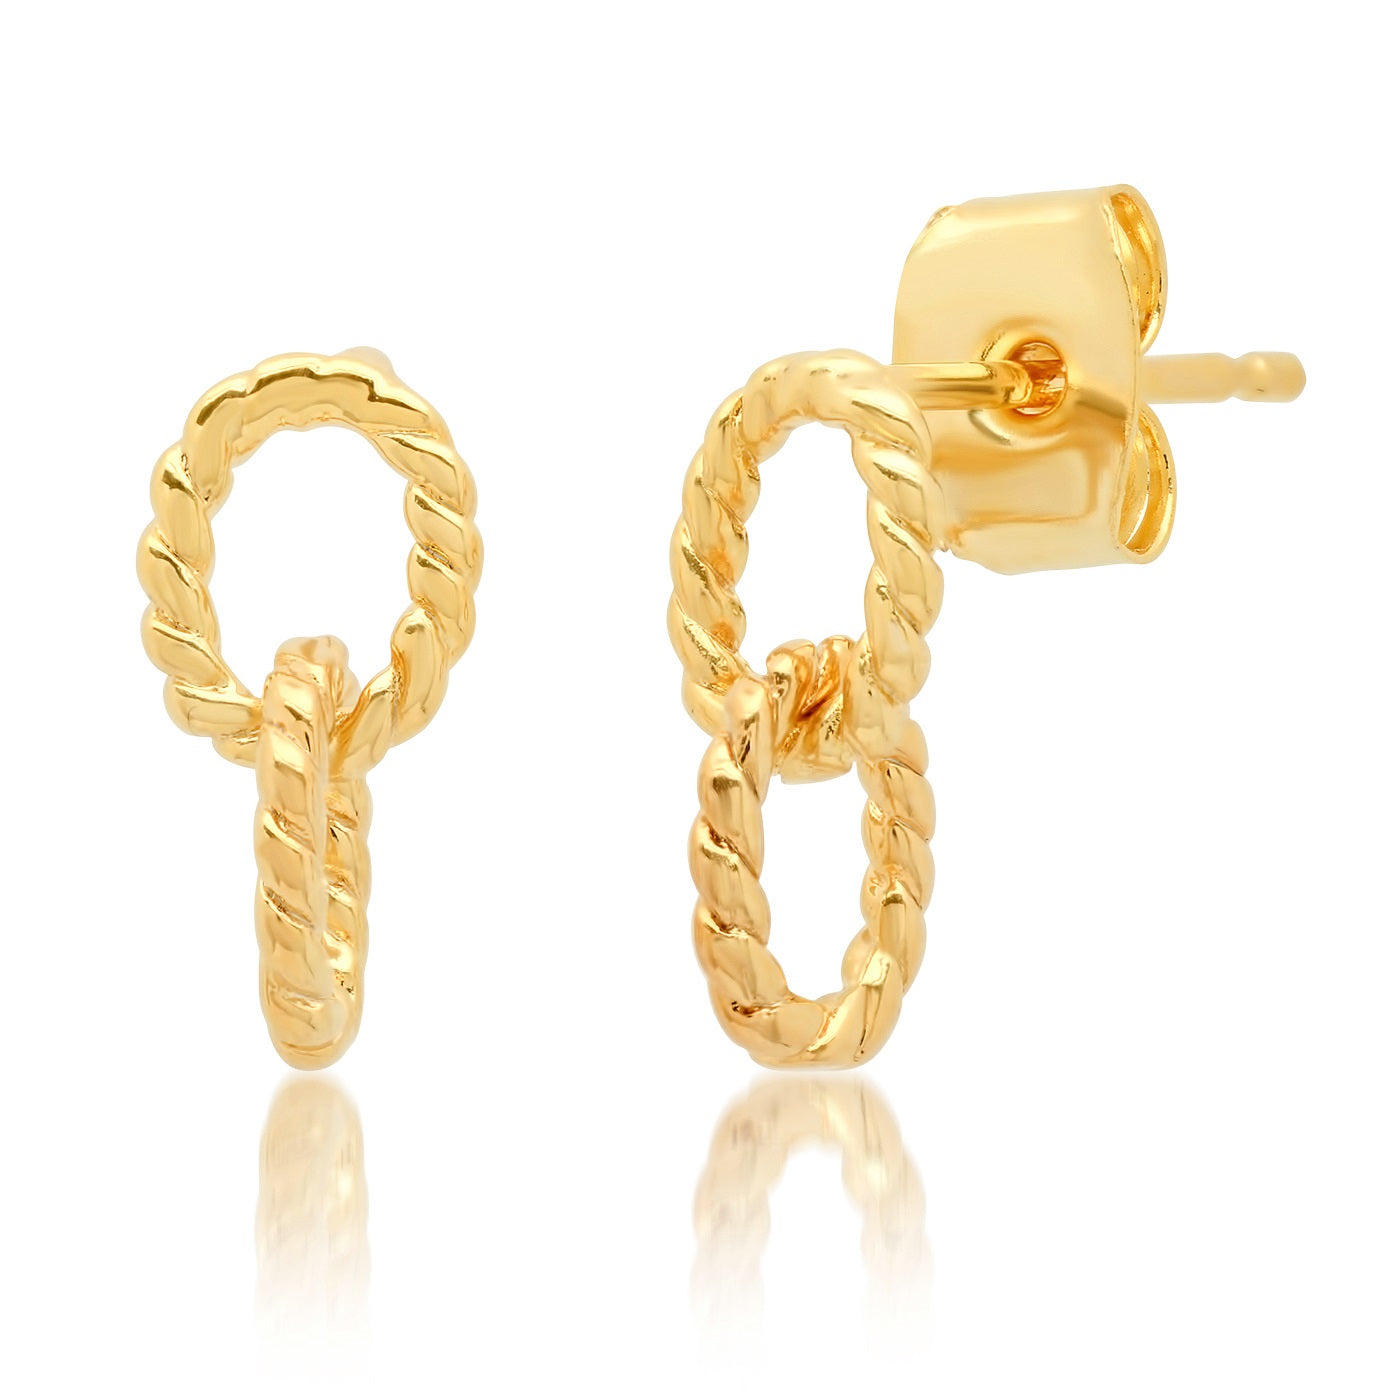 Chain Link Stud Earrings